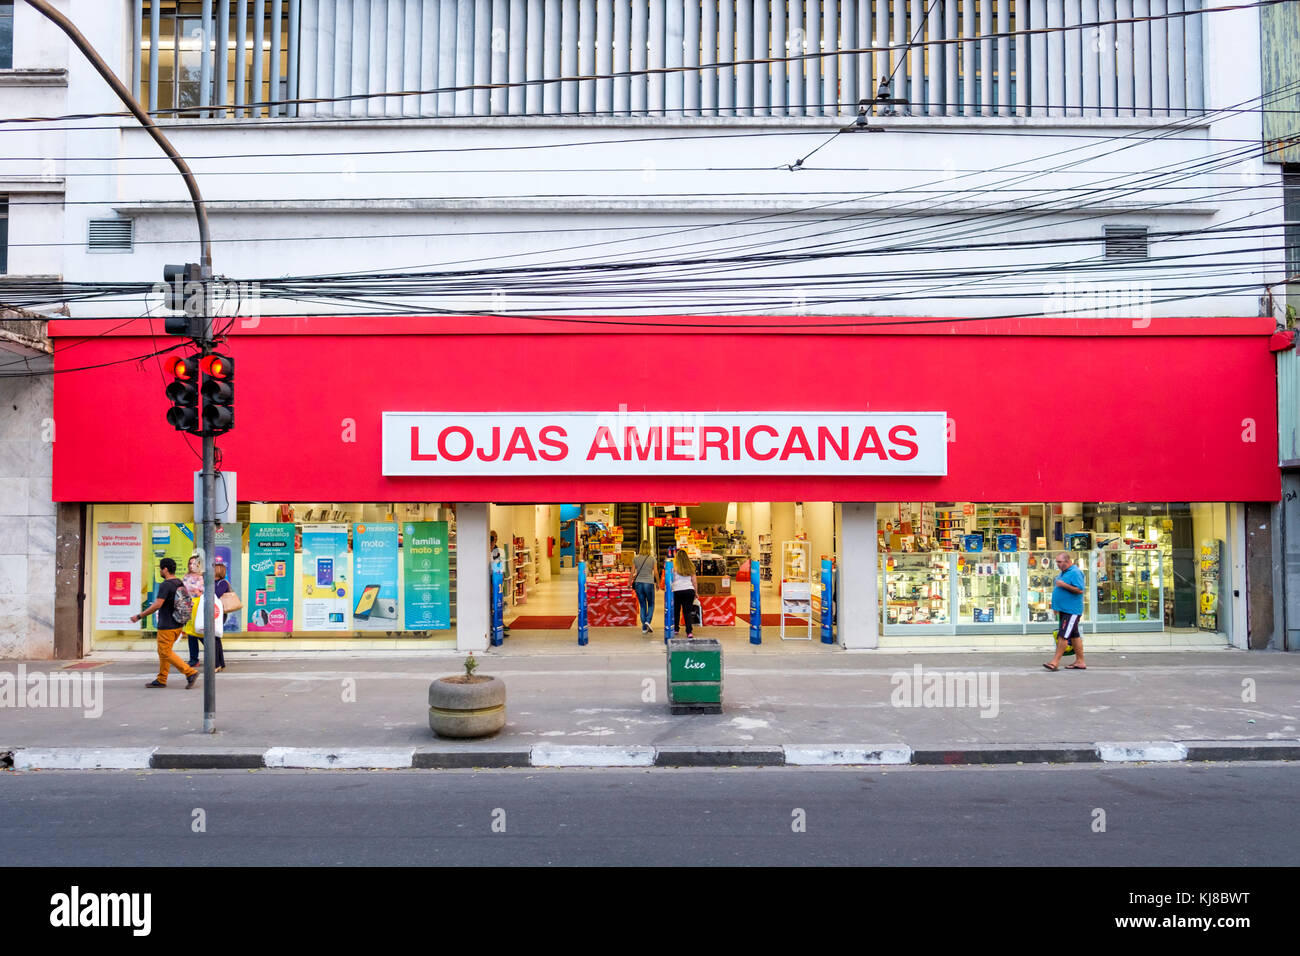 Lojas Americanas S.A., outside view, pedestrians, consumers, Brazilian retail chain store facade with brand name, - Stock Image